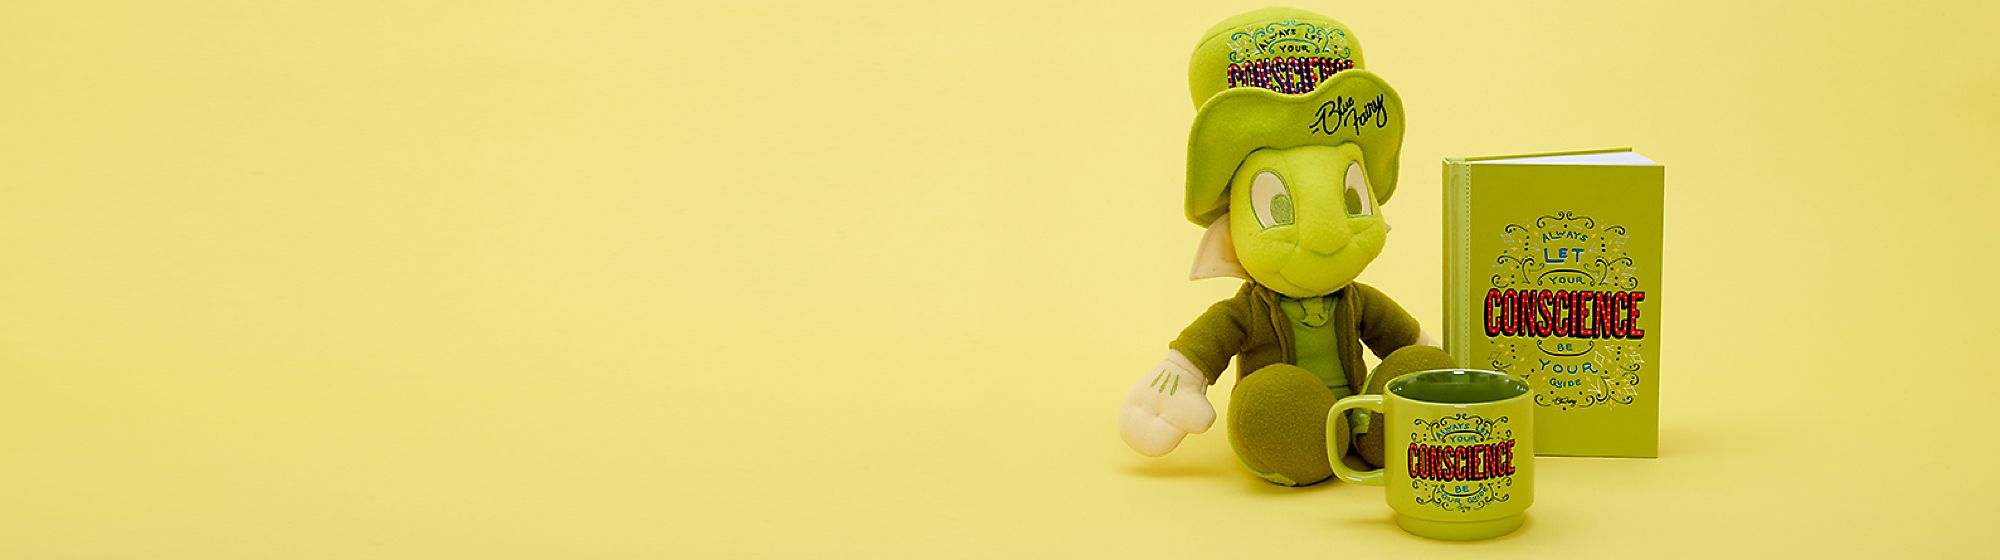 Jiminy Cricket Let your conscience guide you to our Disney Wisdom Jiminy Cricket Collection Coming Soon Releases 18 July